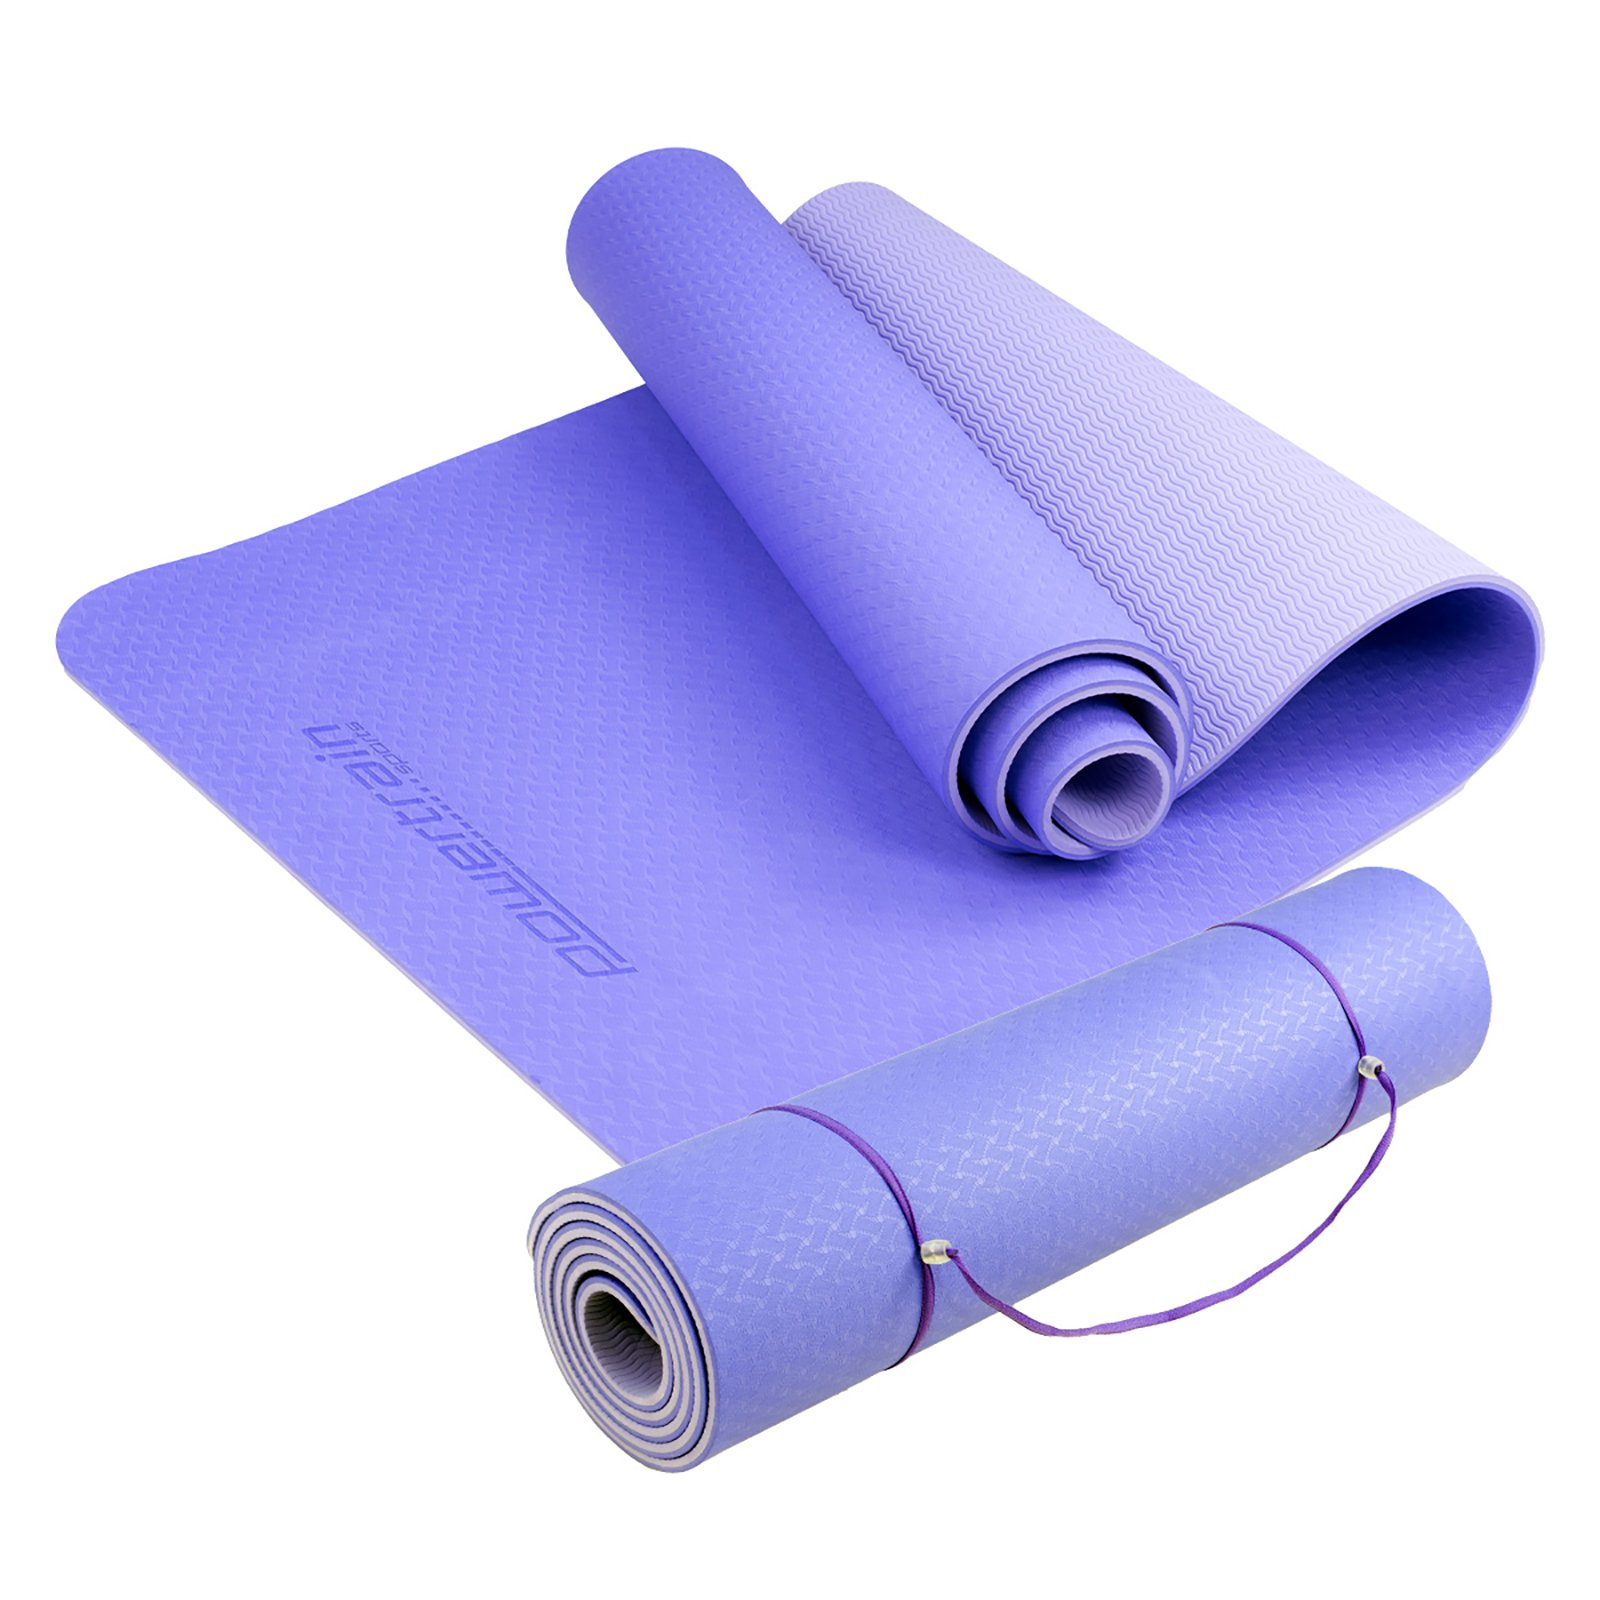 Powertrain Eco Friendly TPE Yoga Exercise Pilates Mat - Blue